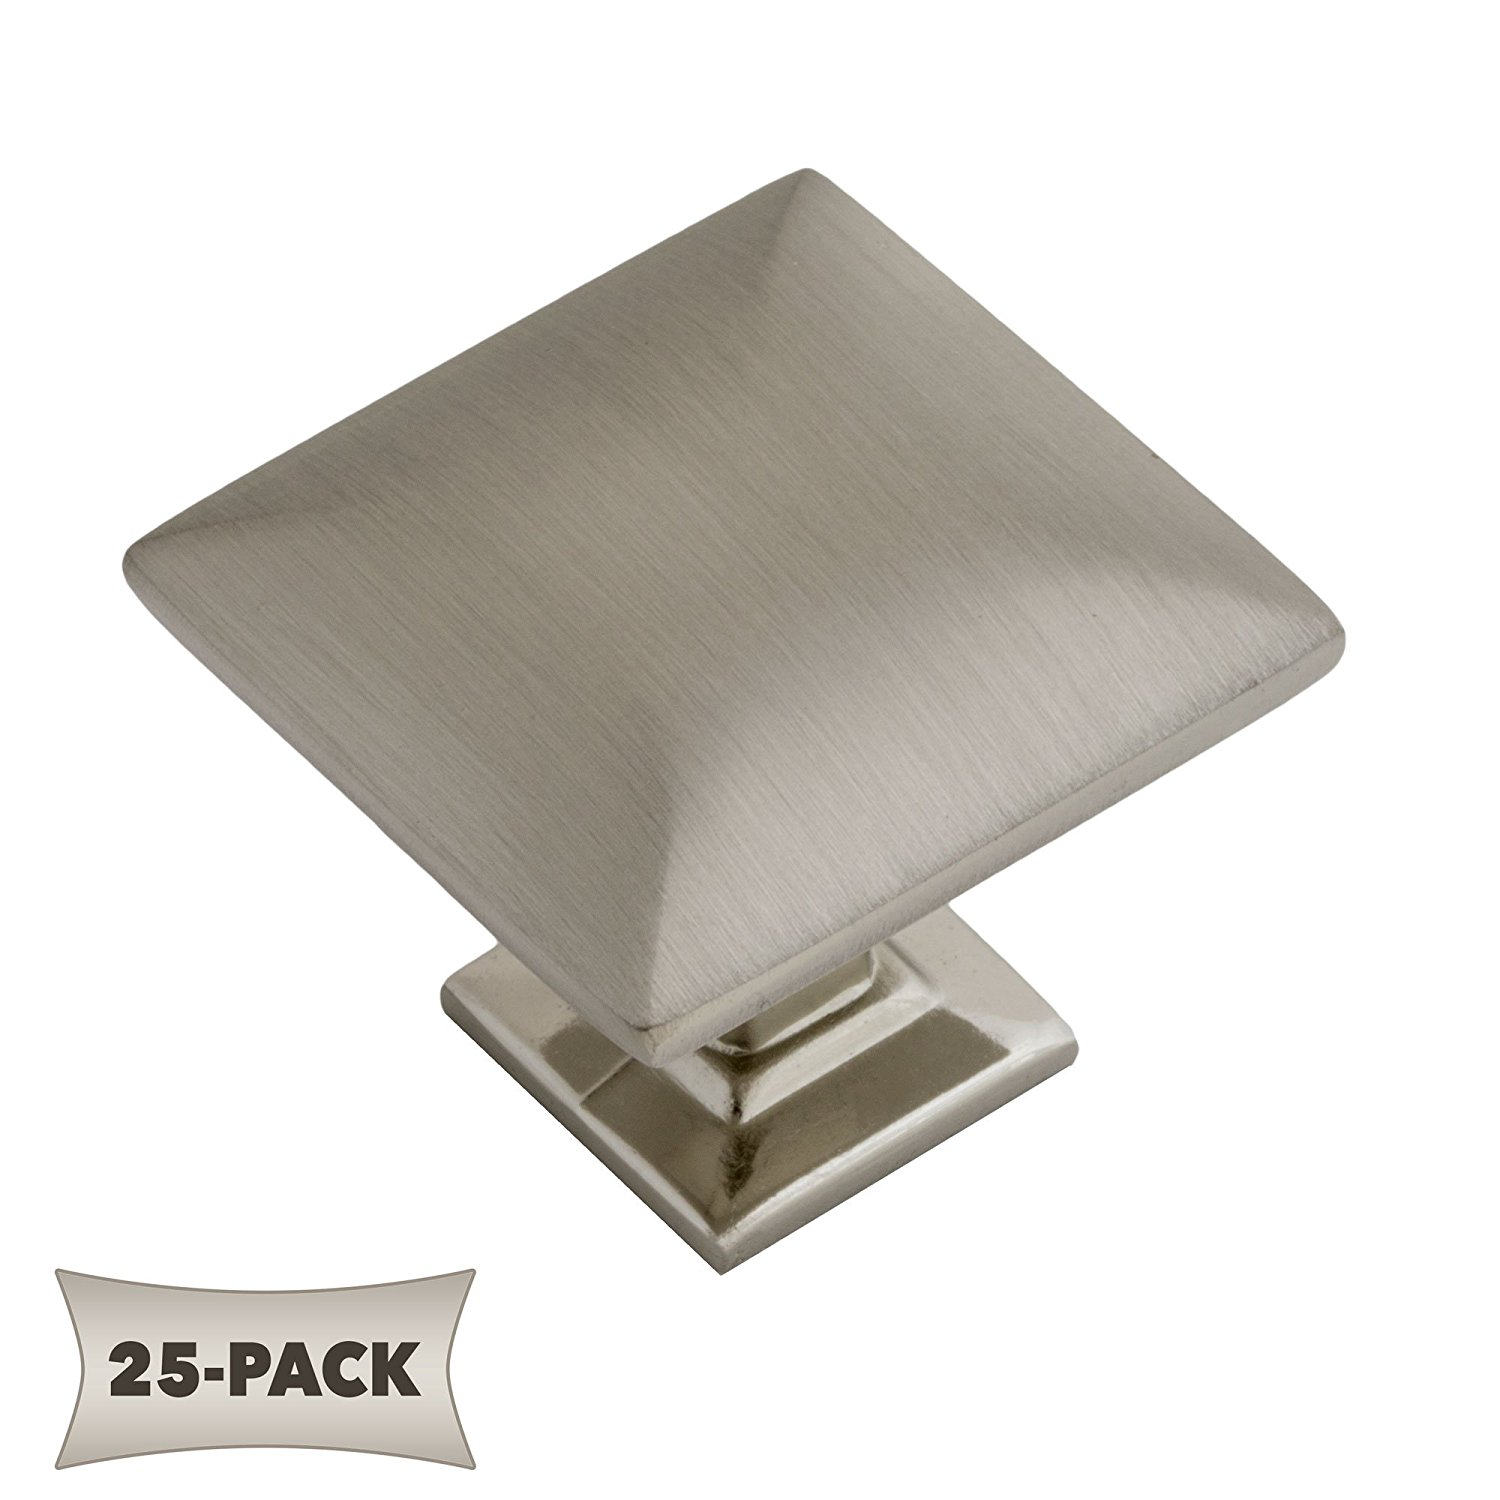 25 Pack Modern Pyramid Square Kitchen Cabinet Hardware Knob 1 1/4 Inch